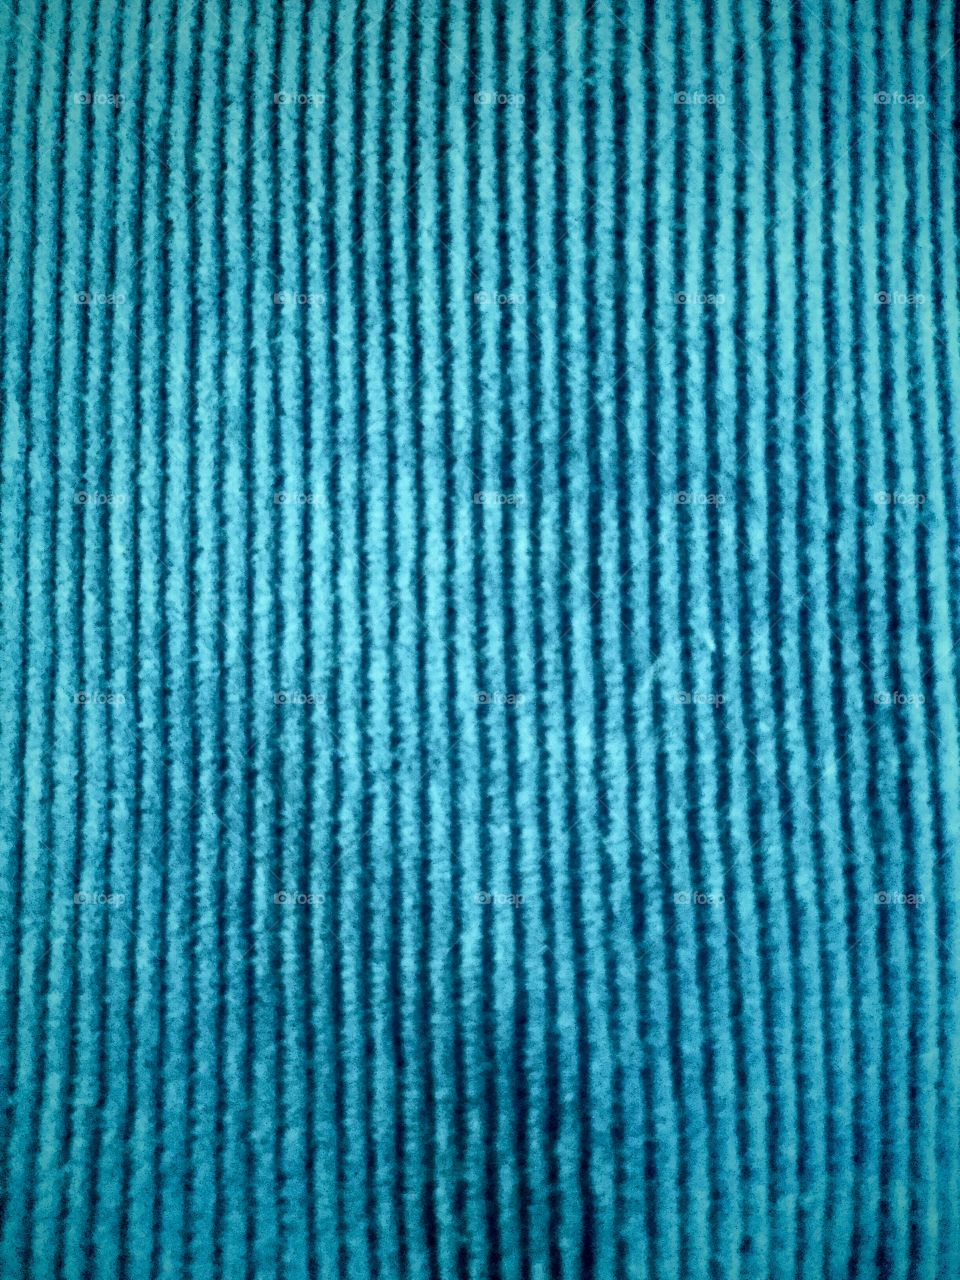 Close-up of corduroy fabric